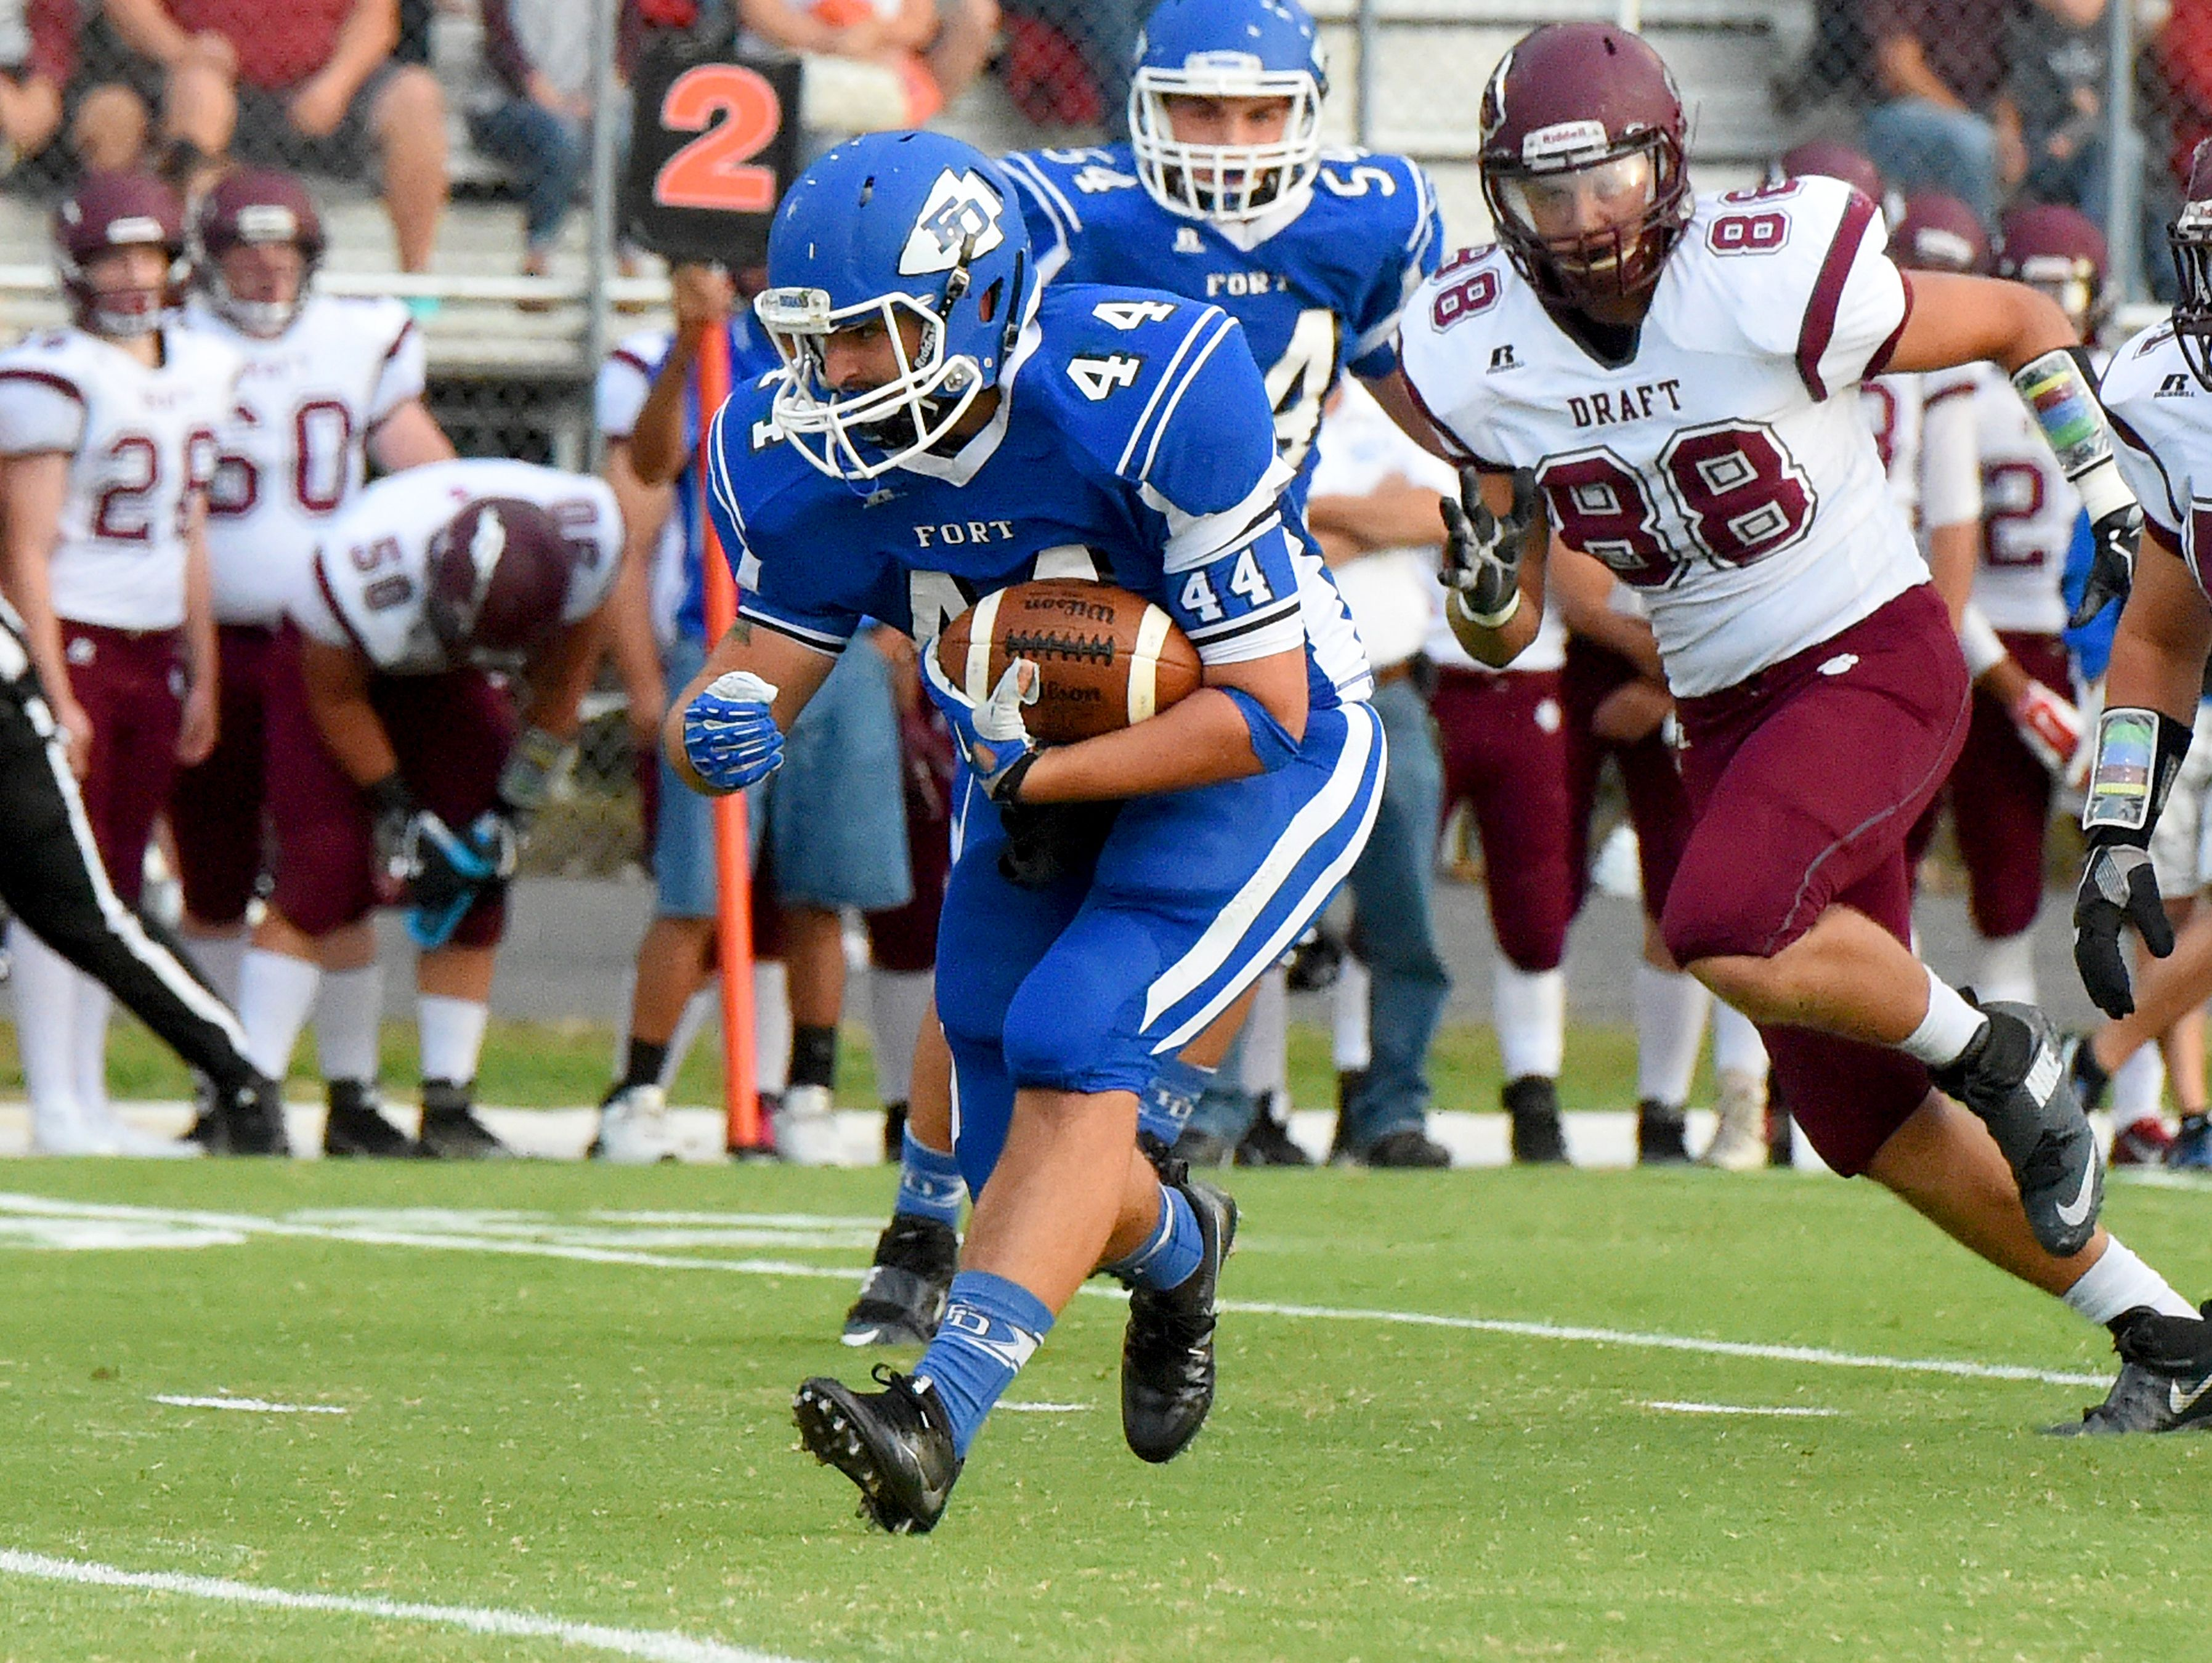 Fort Defiance's Austin Fitzwater runs the ball as Stuarts Draft's John Gumann pursues during a football game played in Fort Defiance on Friday, Sept. 2, 2016.